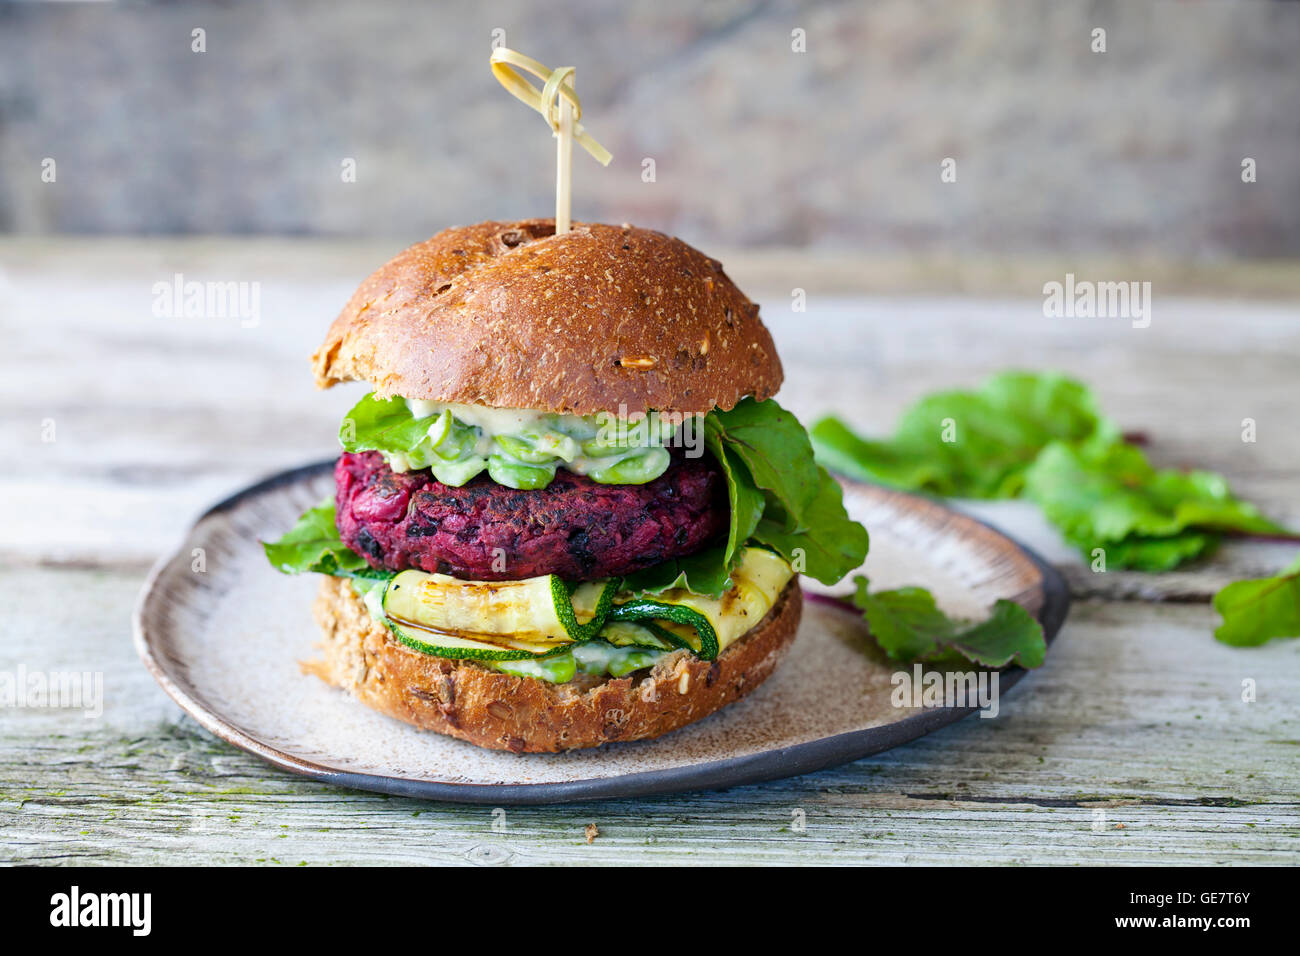 Vegetarian beetroot and black beans burger with grilled courgettes and broad beans - Stock Image